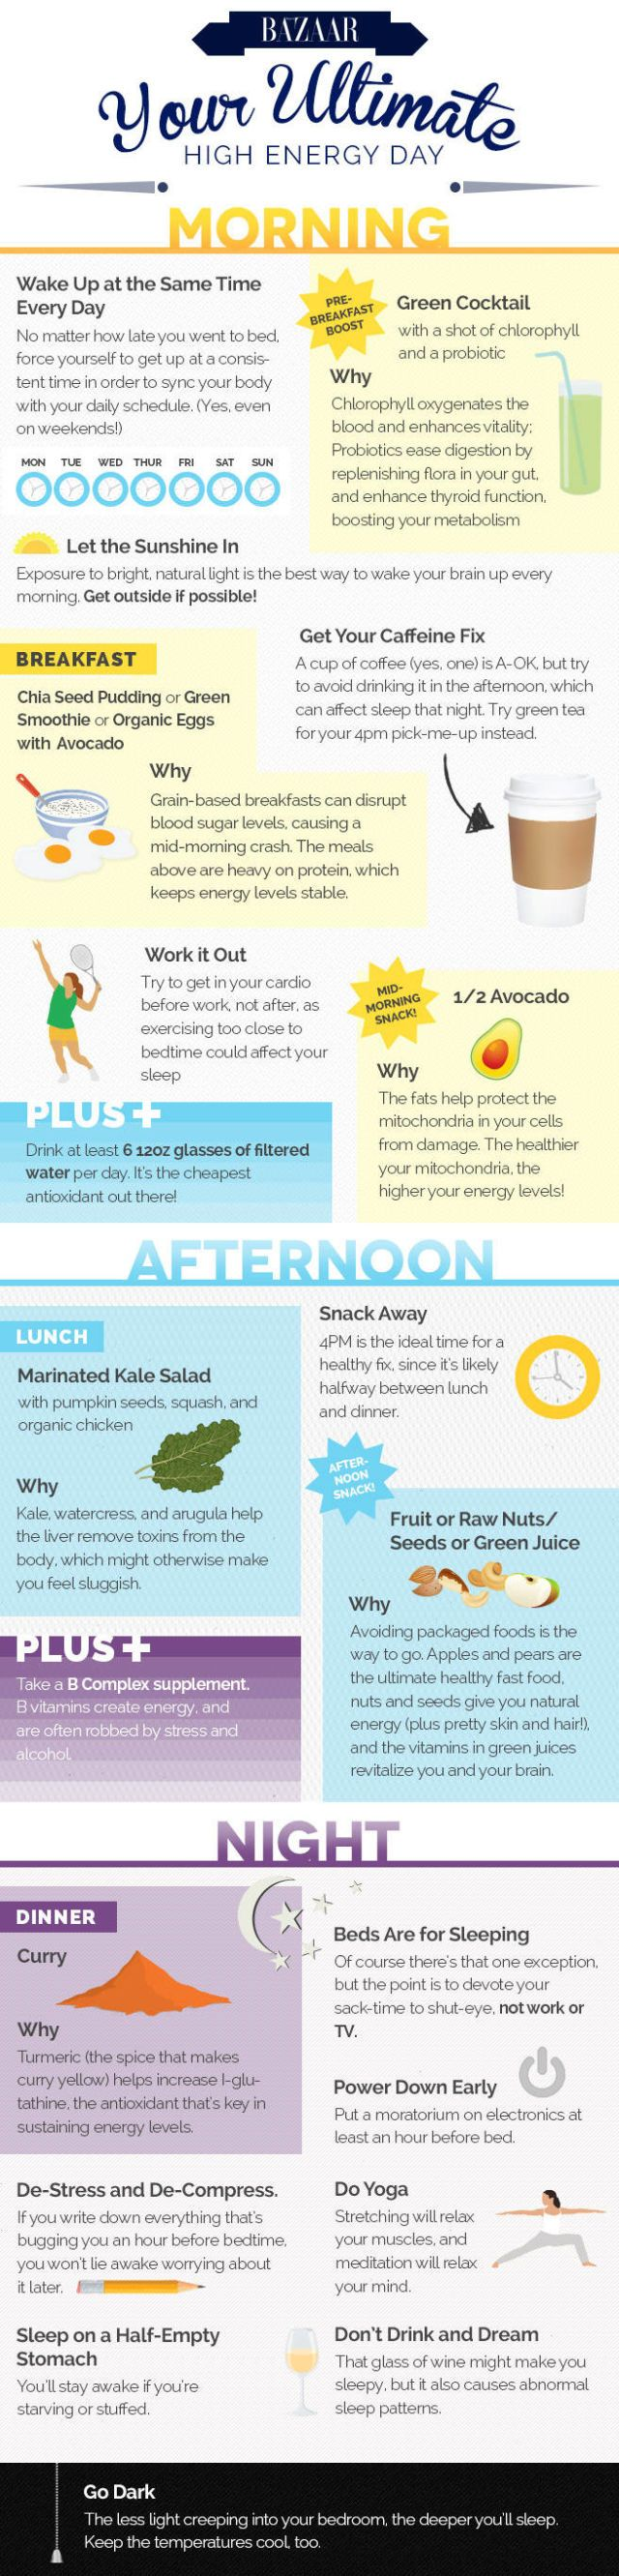 How to get more energy to last you all day long: